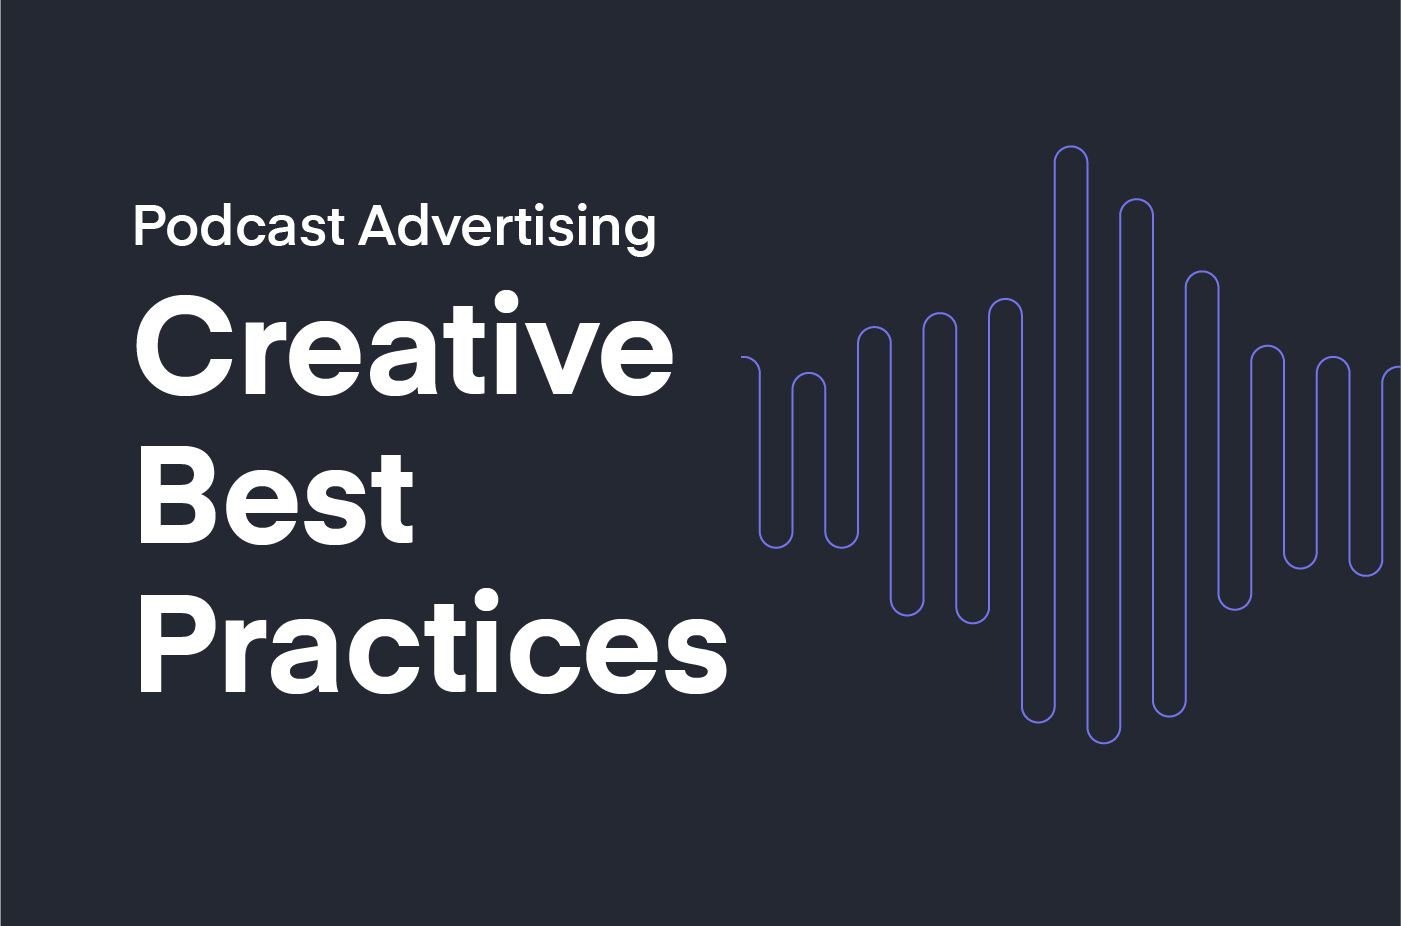 Podcast Advertising Creative Best Practices